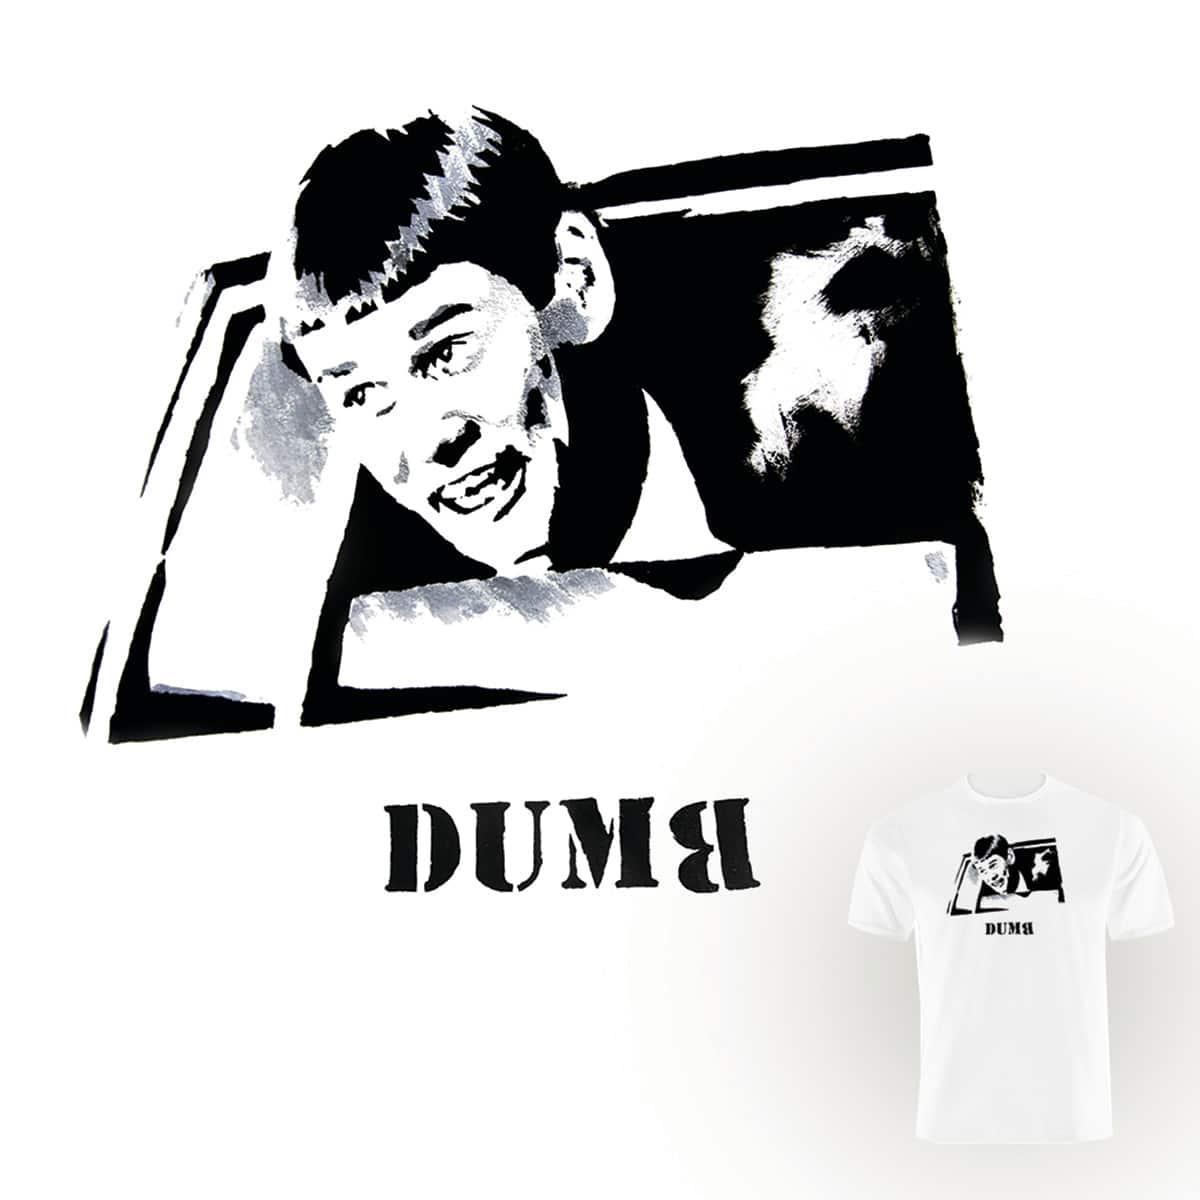 Dumb by Neematoad and CHAMPAKALI on Threadless